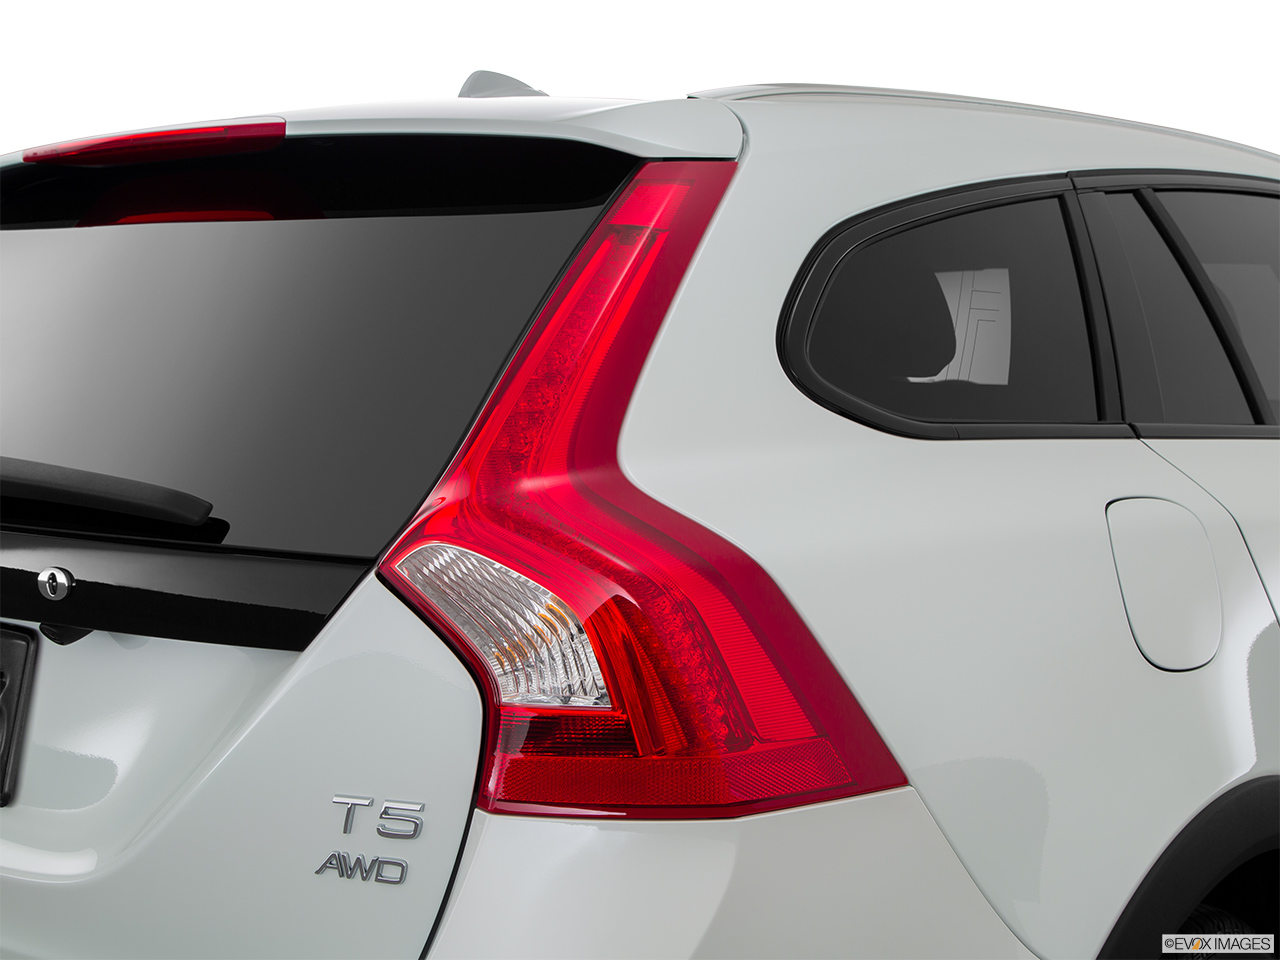 2015 Volvo V60 Cross Country T5 AWD Passenger Side Taillight.